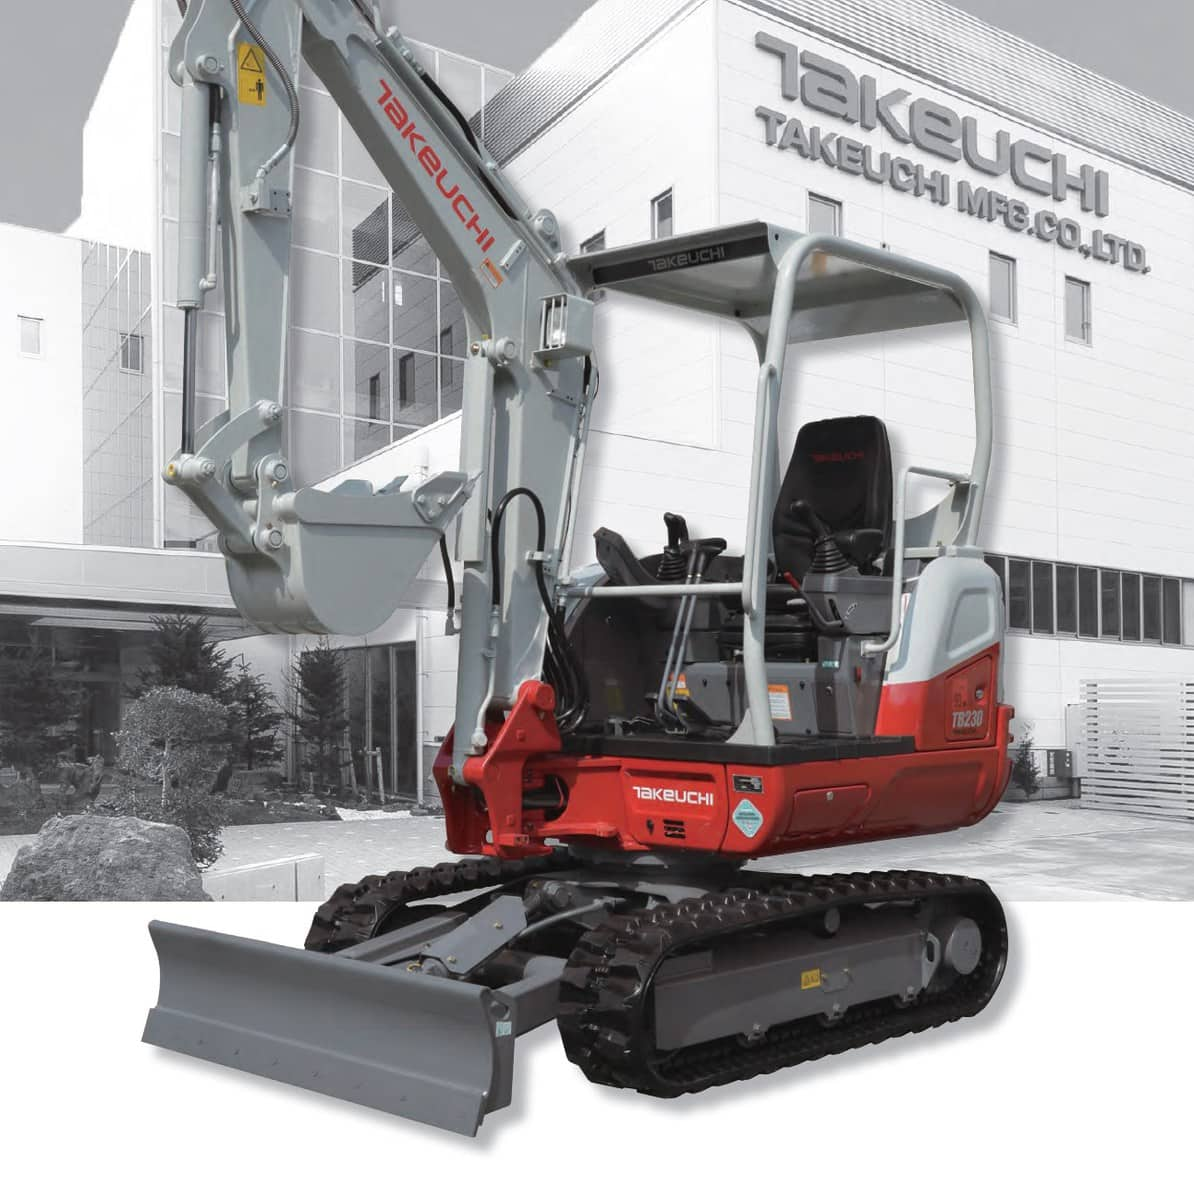 North Queensland Equipment Welcome FNQ Takeuchi owners to the family.